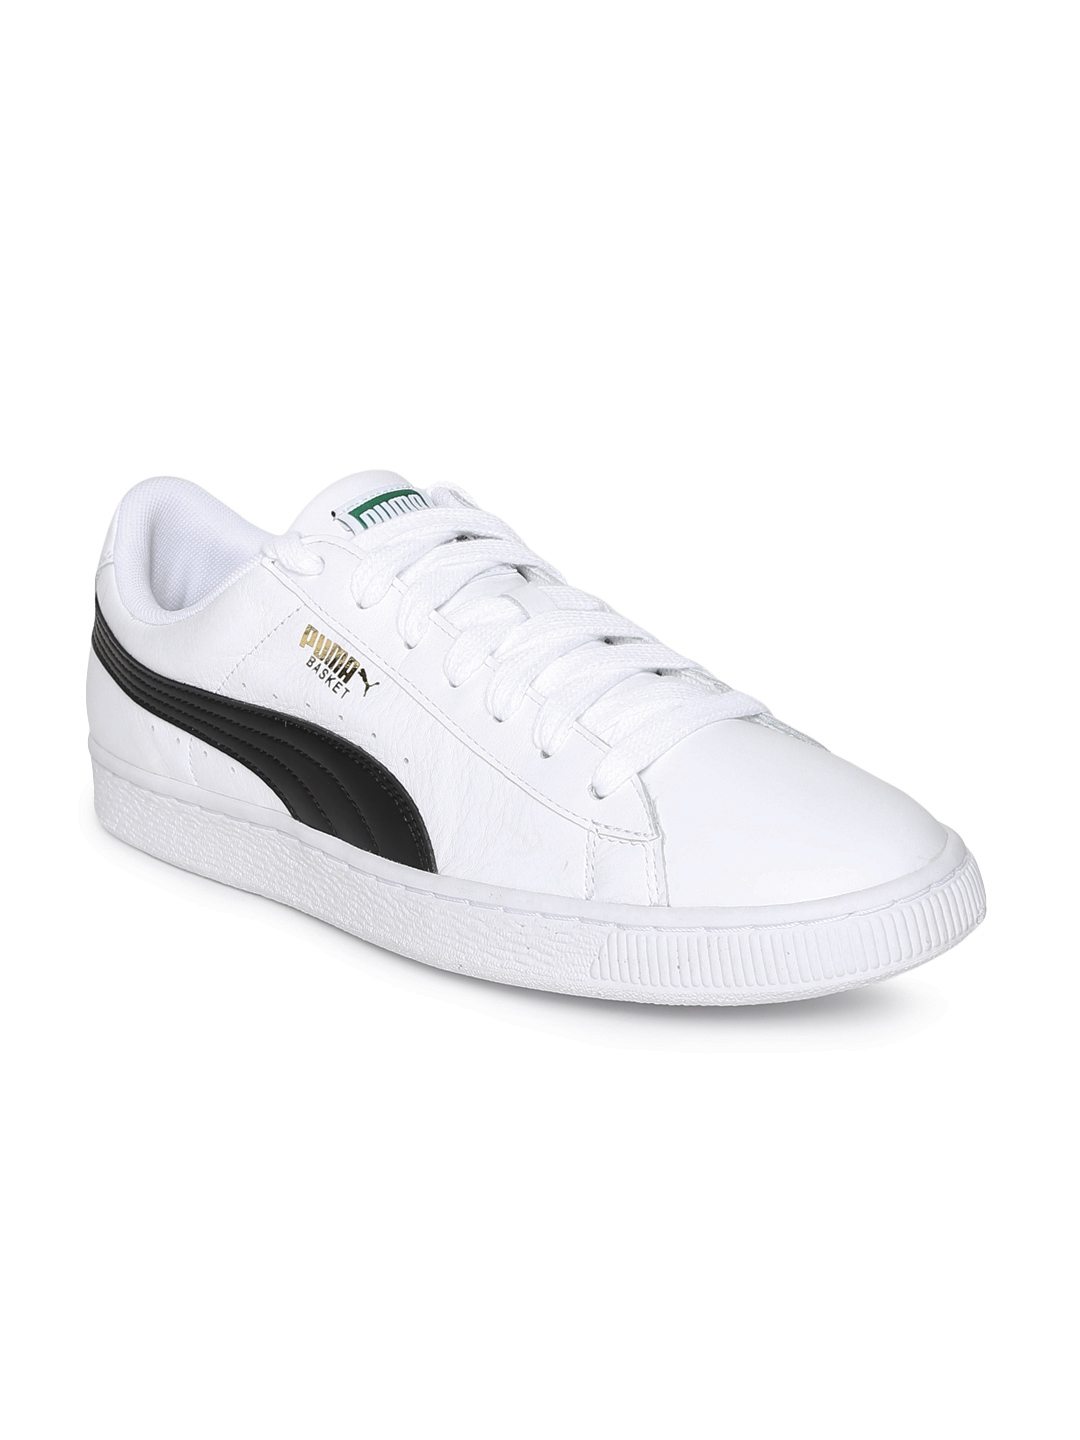 d224013a47f Buy Puma Men White Basket Classic LFS Sneakers - Casual Shoes for ...